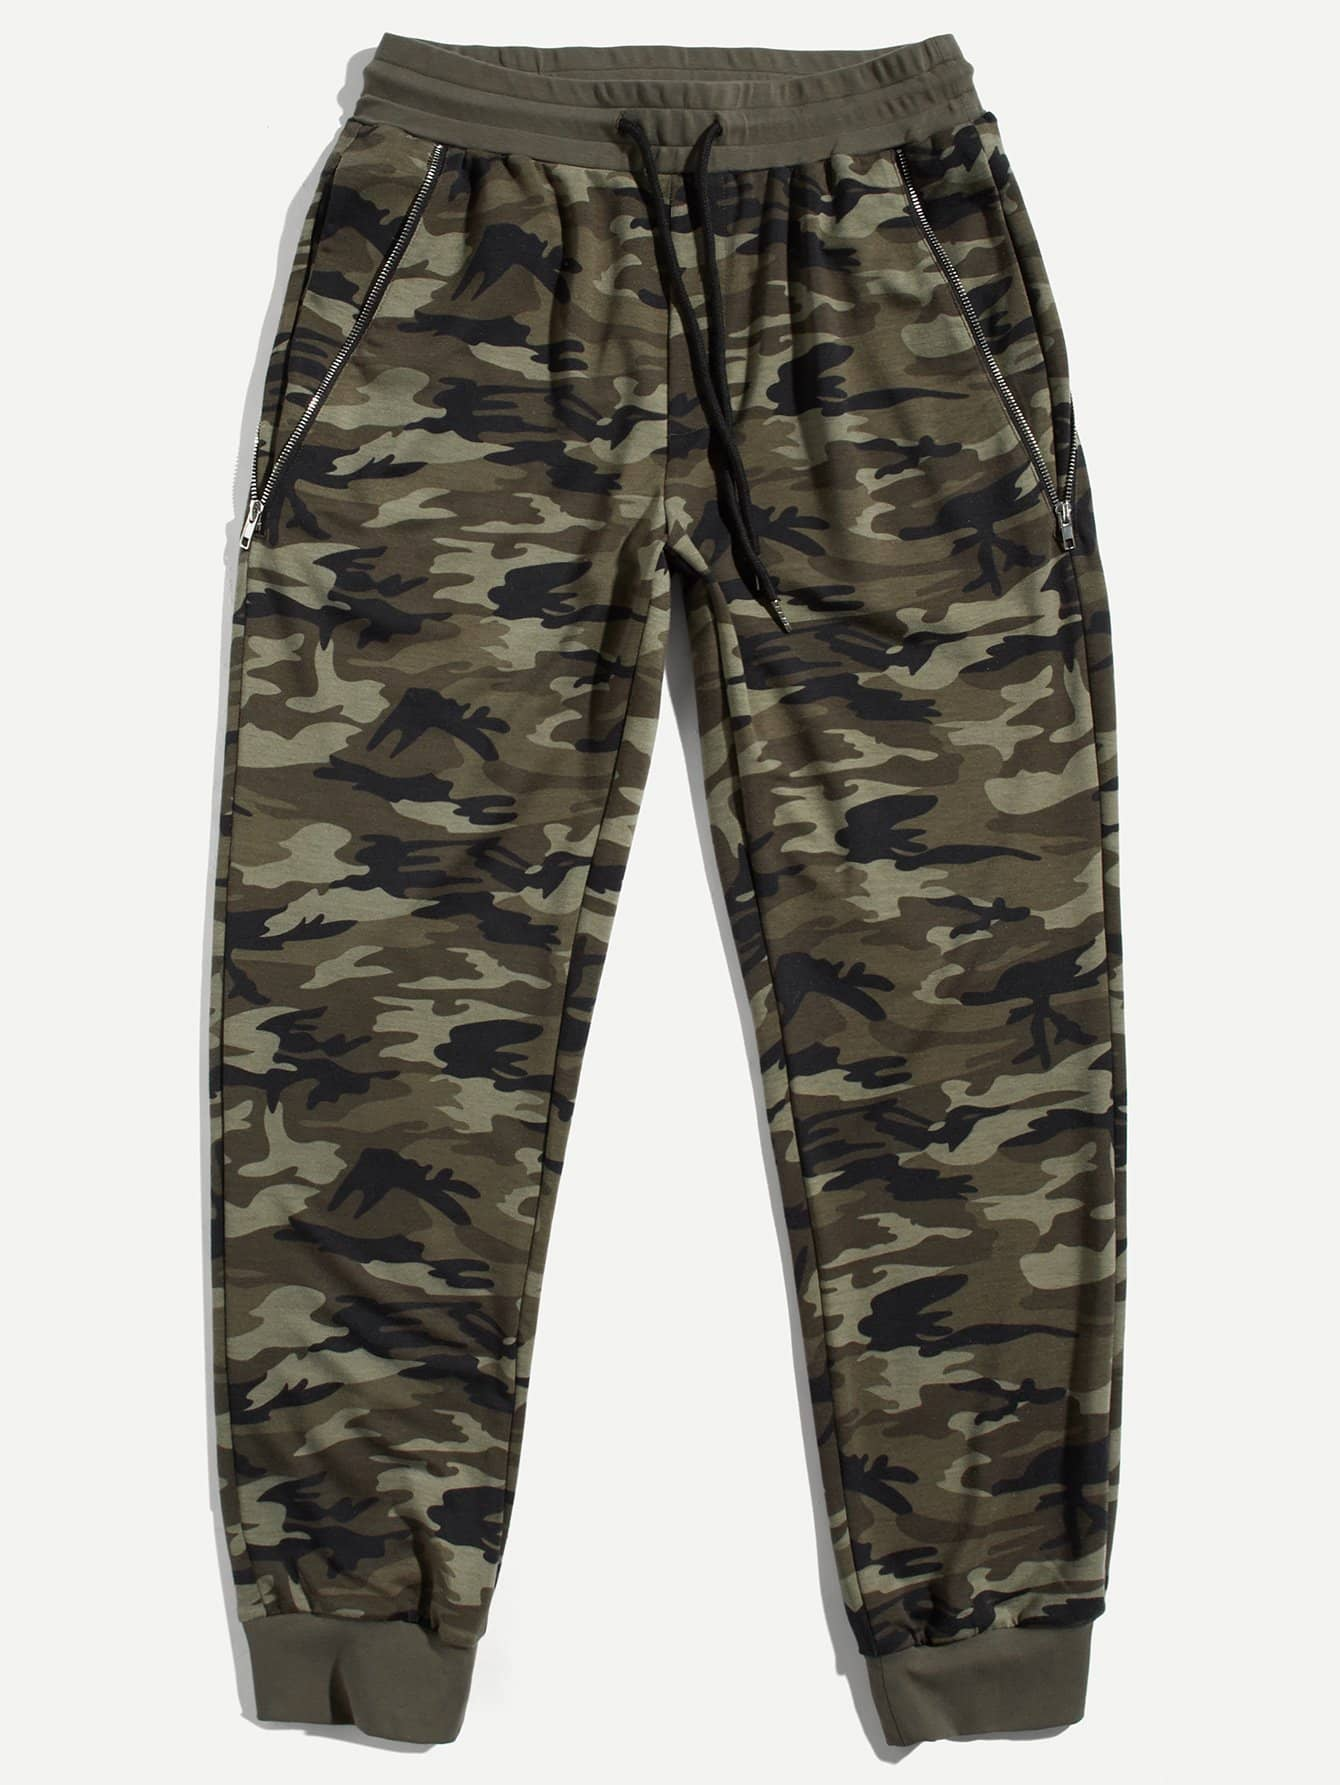 Men Zip Pocket Camo Drawstring Pants idopy men s street style denim pants camouflage camo joggers stretchy drawstring biker cargo pants for hipster